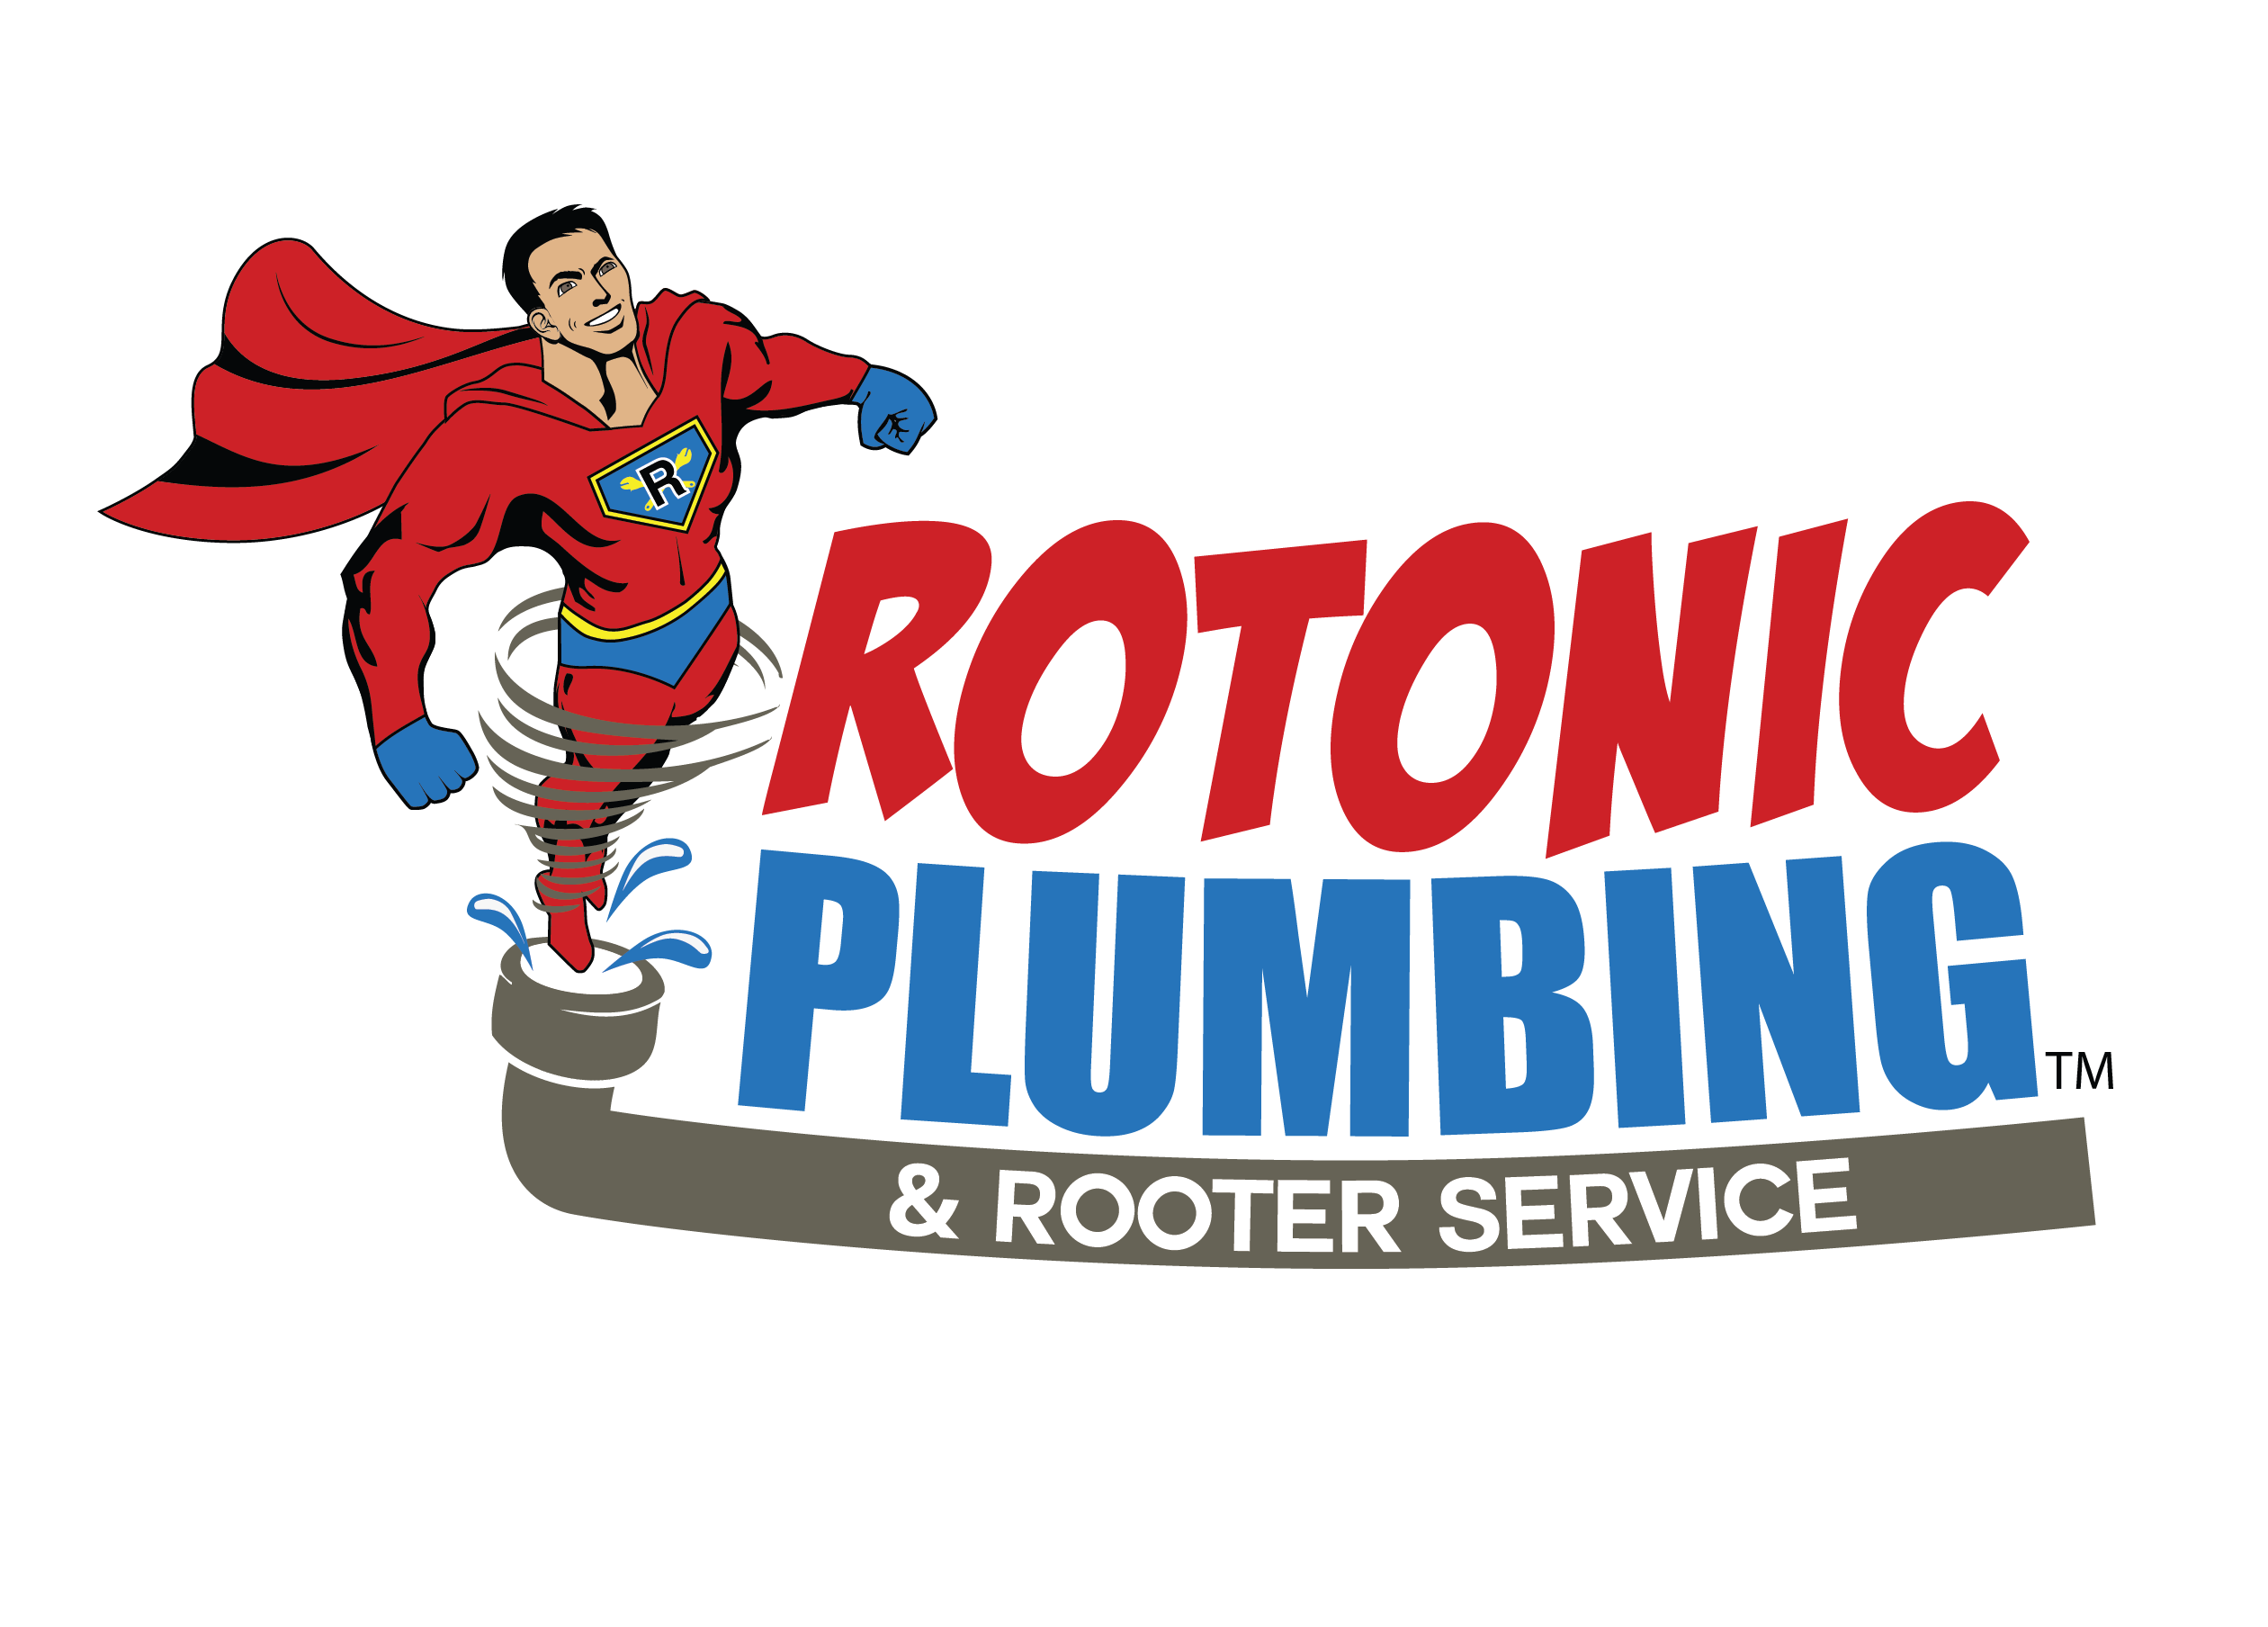 Rotonic Plumbing & Rooter Serv - Black Owned